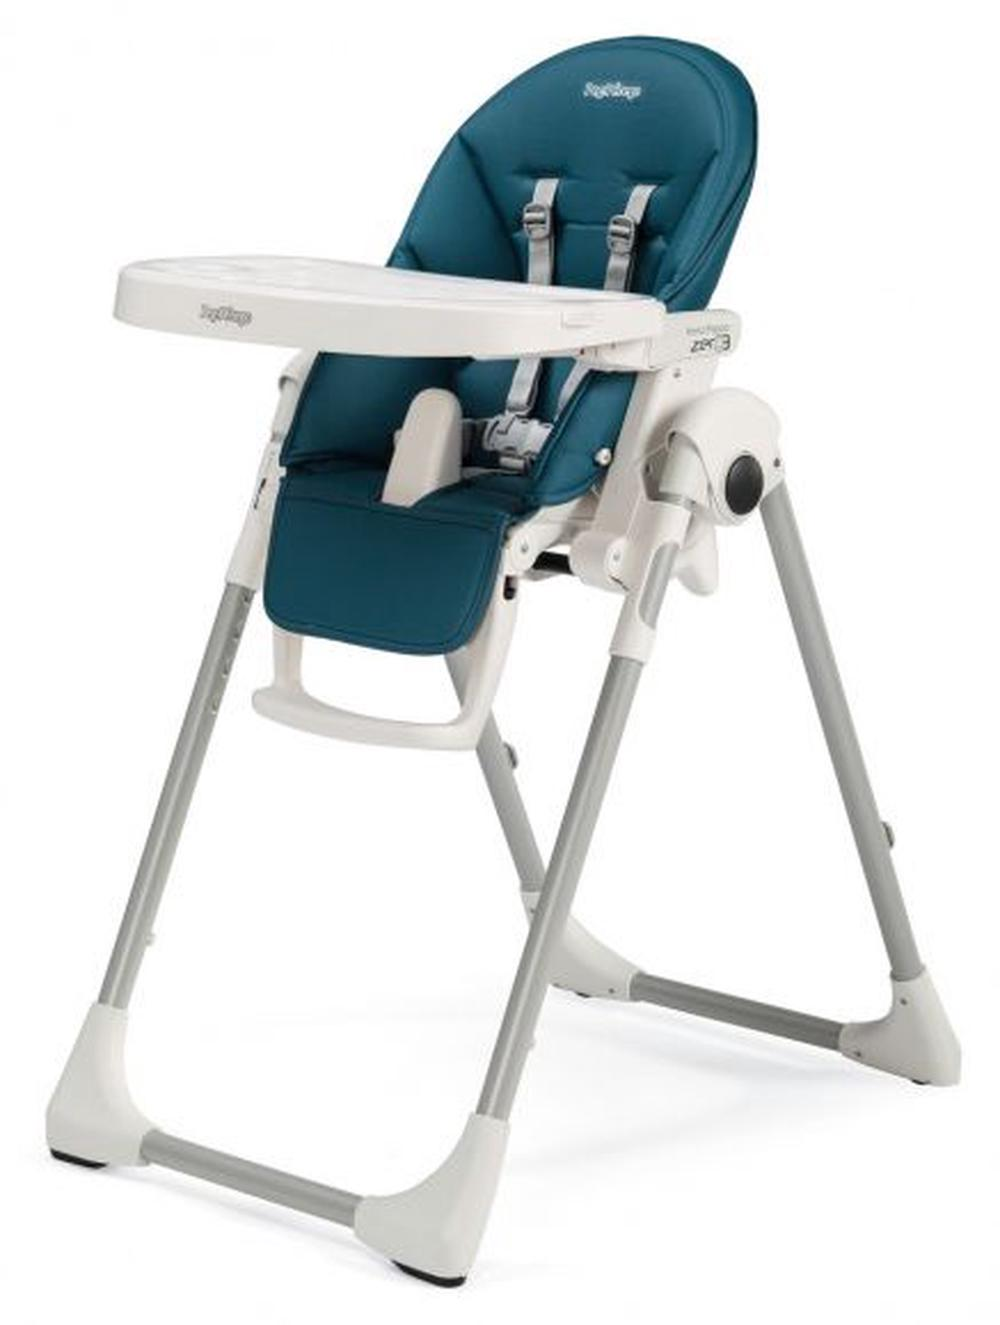 Perego High Chair Peg Perego Adjustable Prima Pappa Zero3 High Chair Petrolio Blue